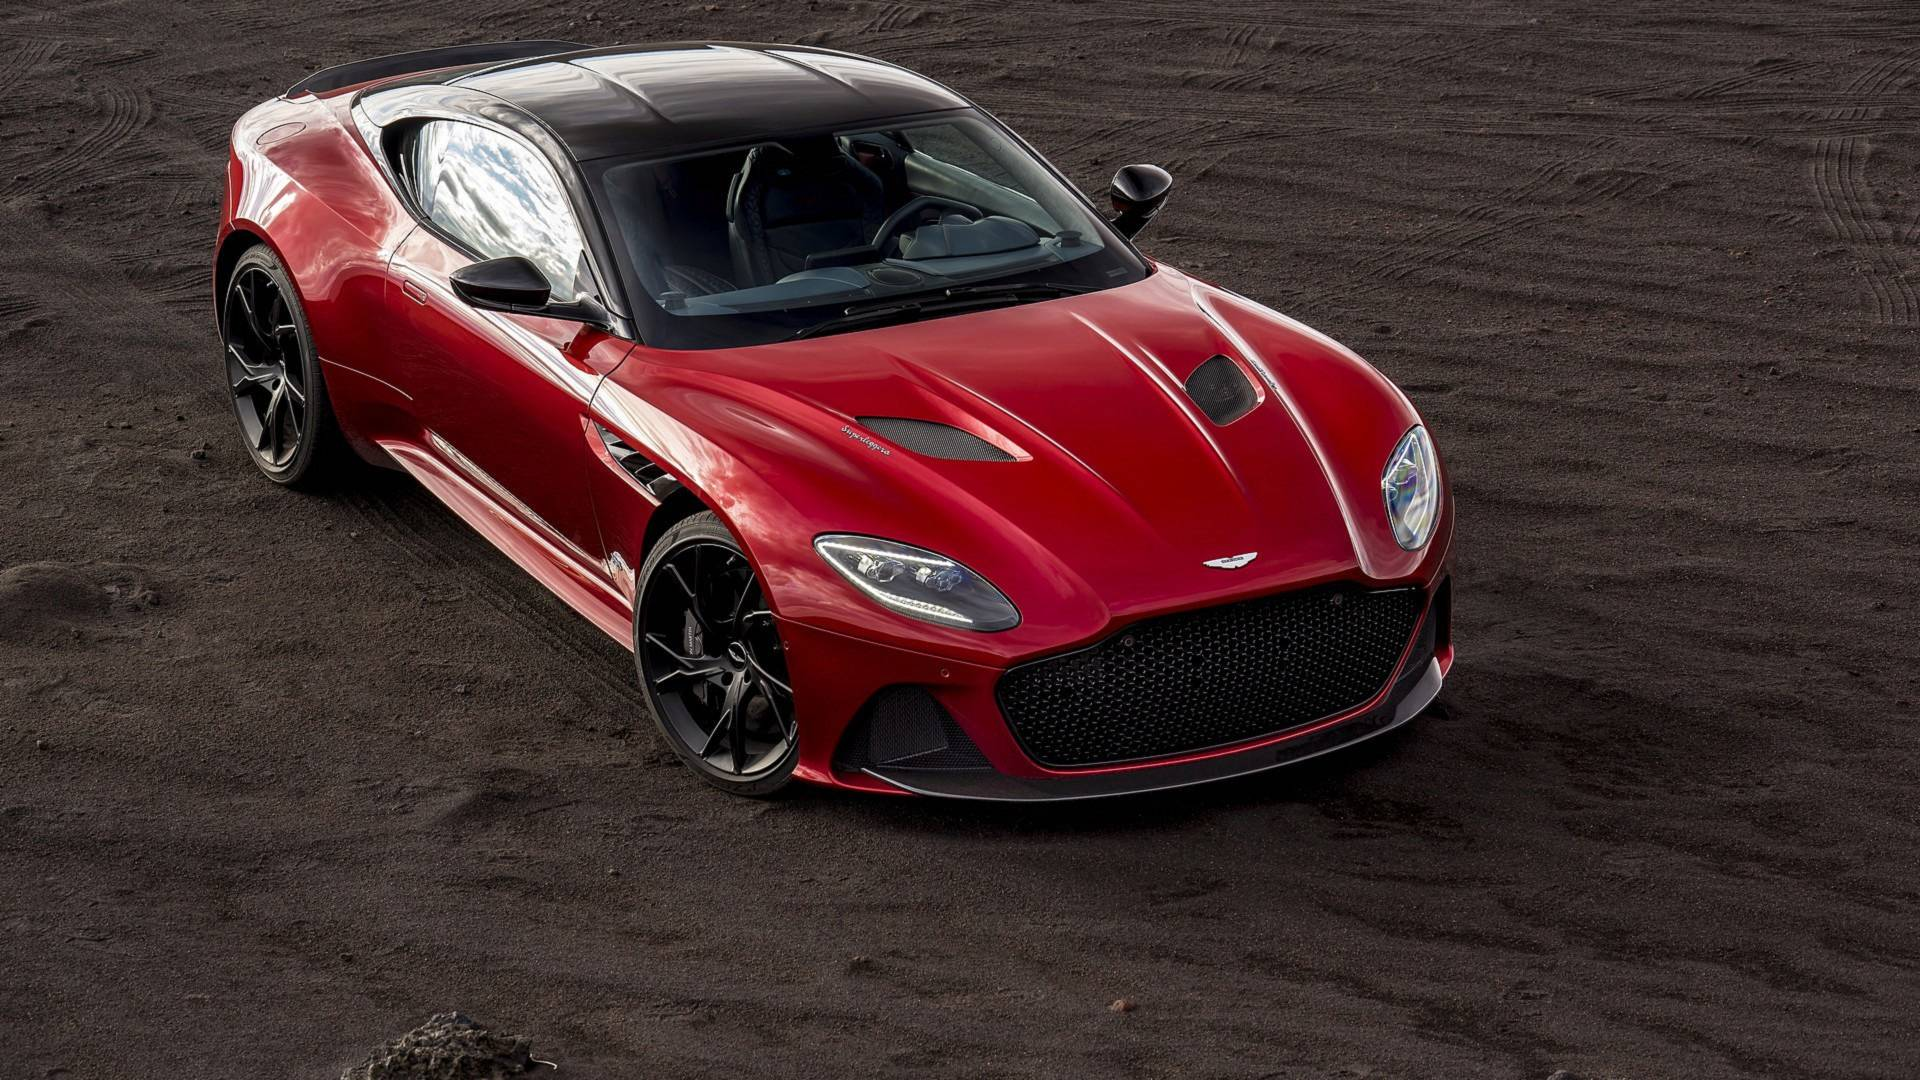 Go Configure The Aston Martin Dbs Superleggera Of Your Dreams